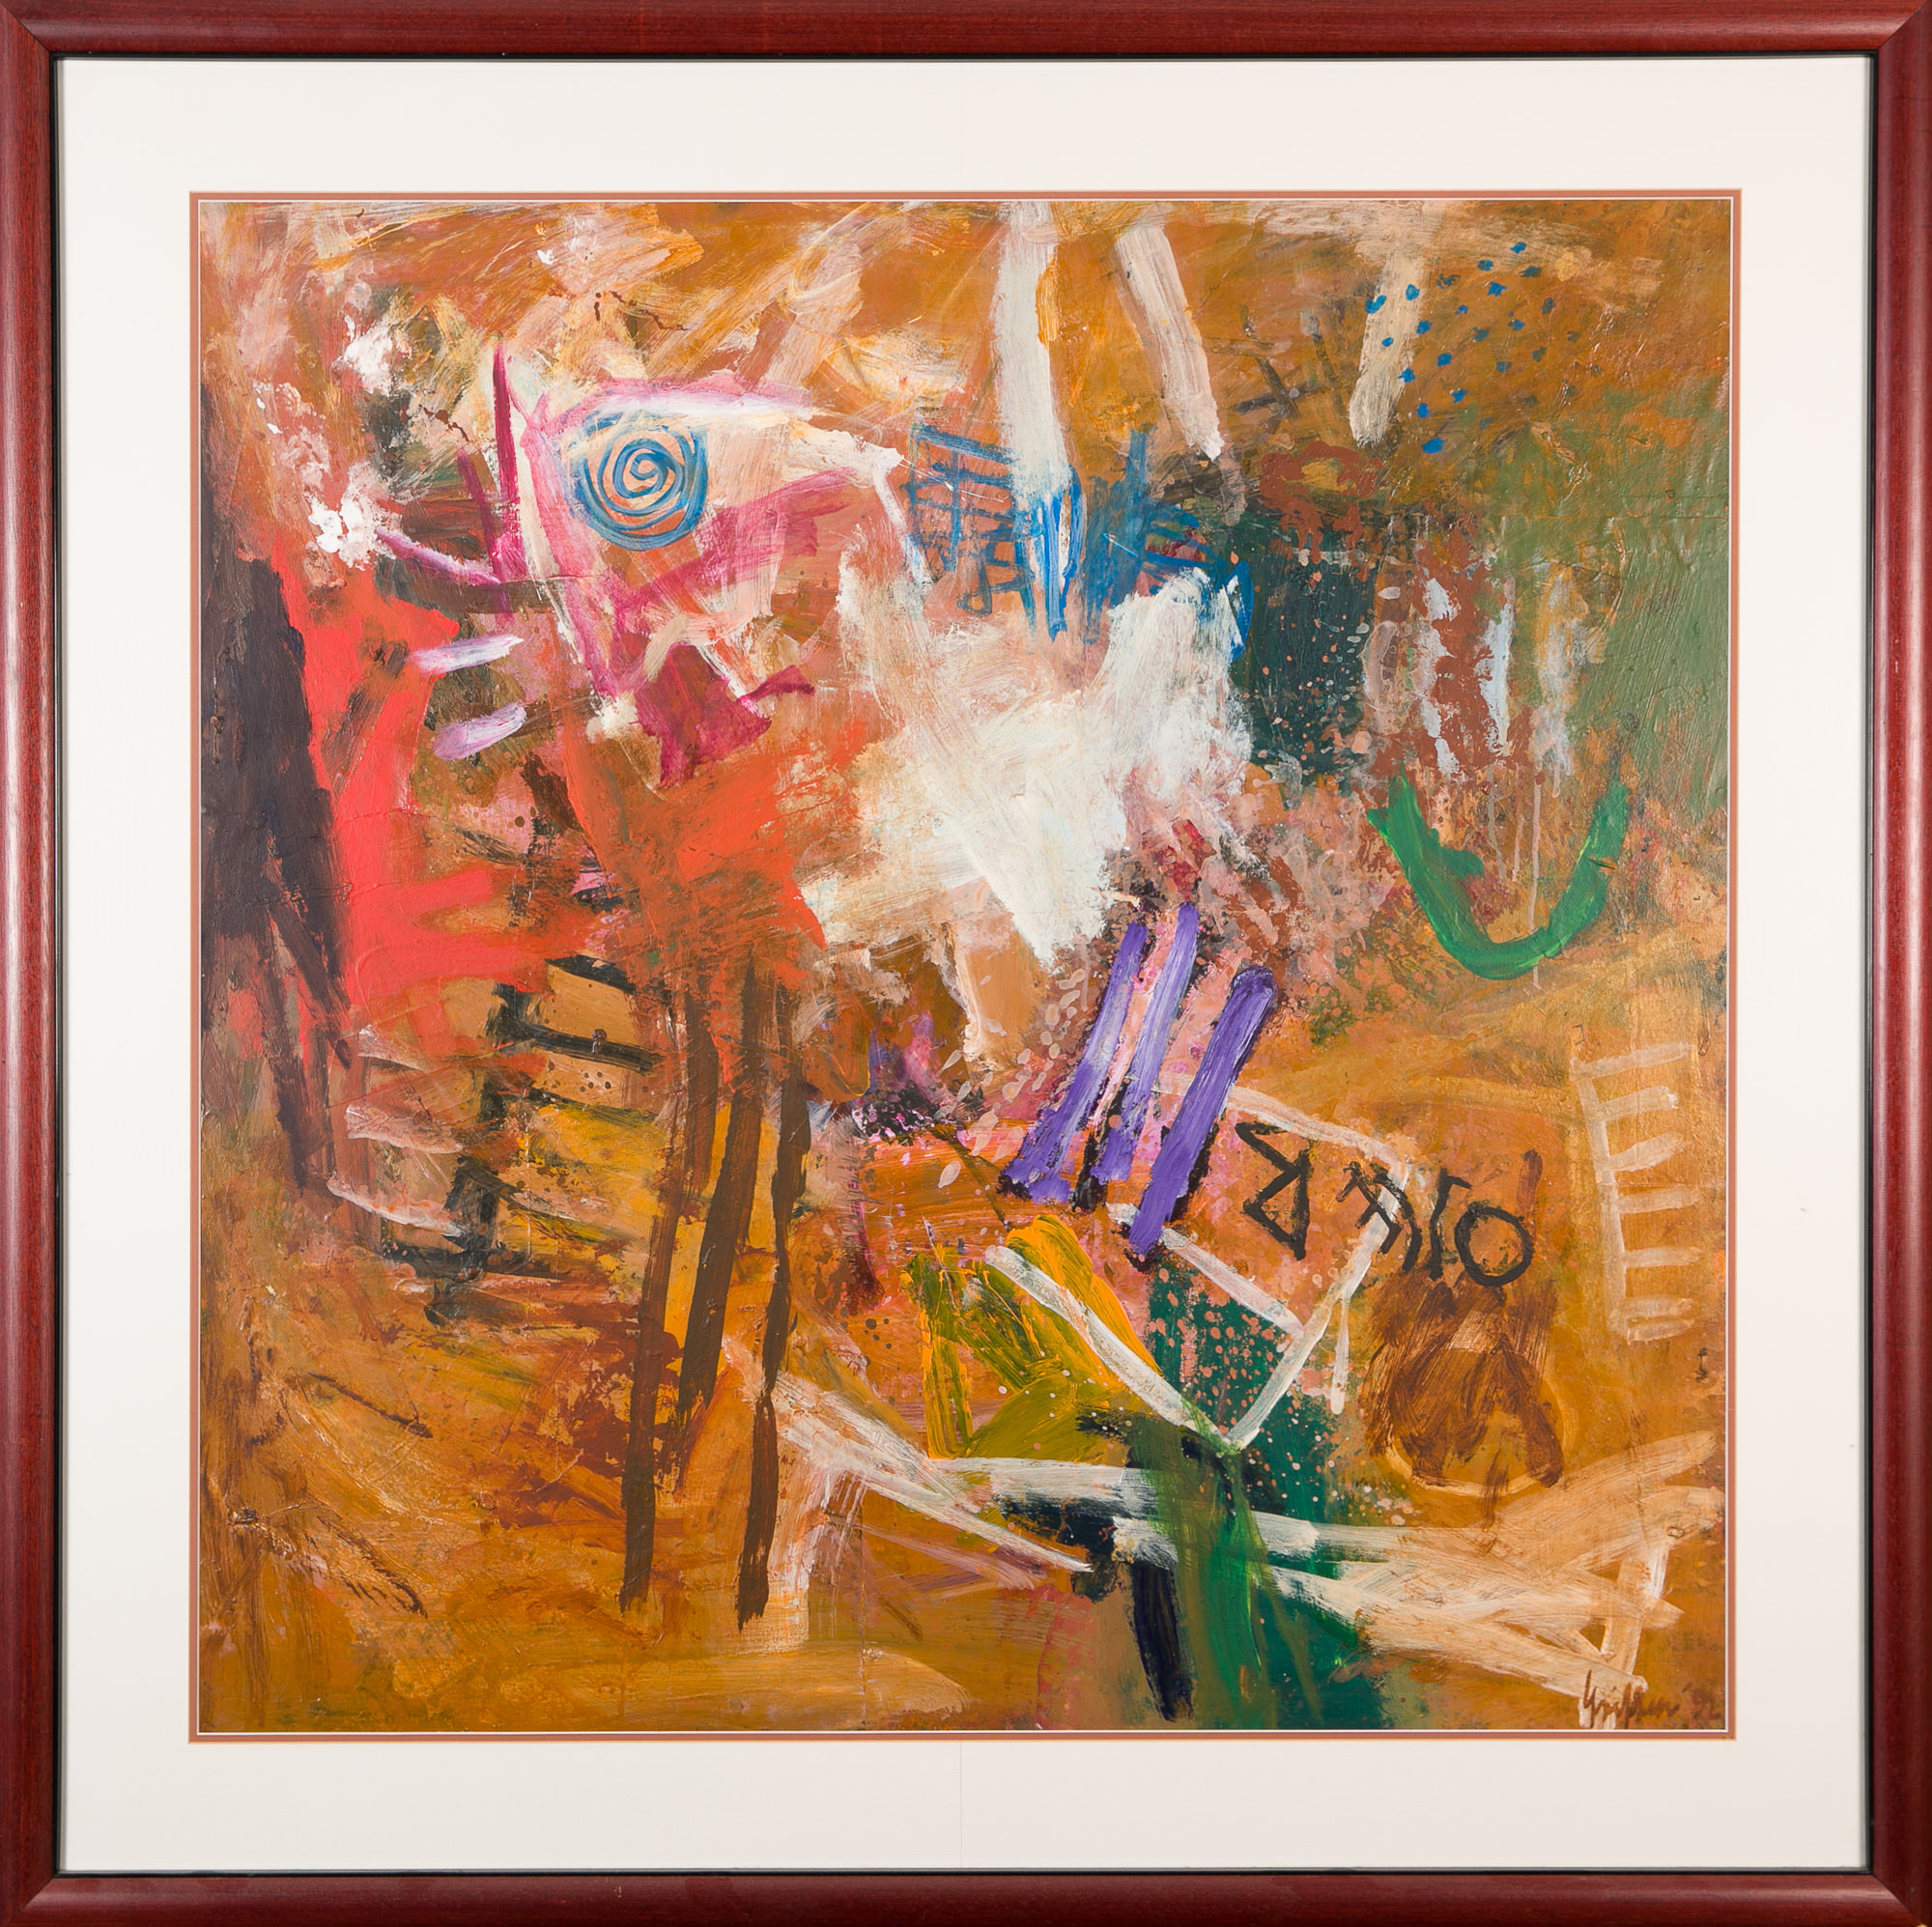 'Peter Griffen (1948 -) 3 Mile Diggings III 1992, Mixed Media on Paper'